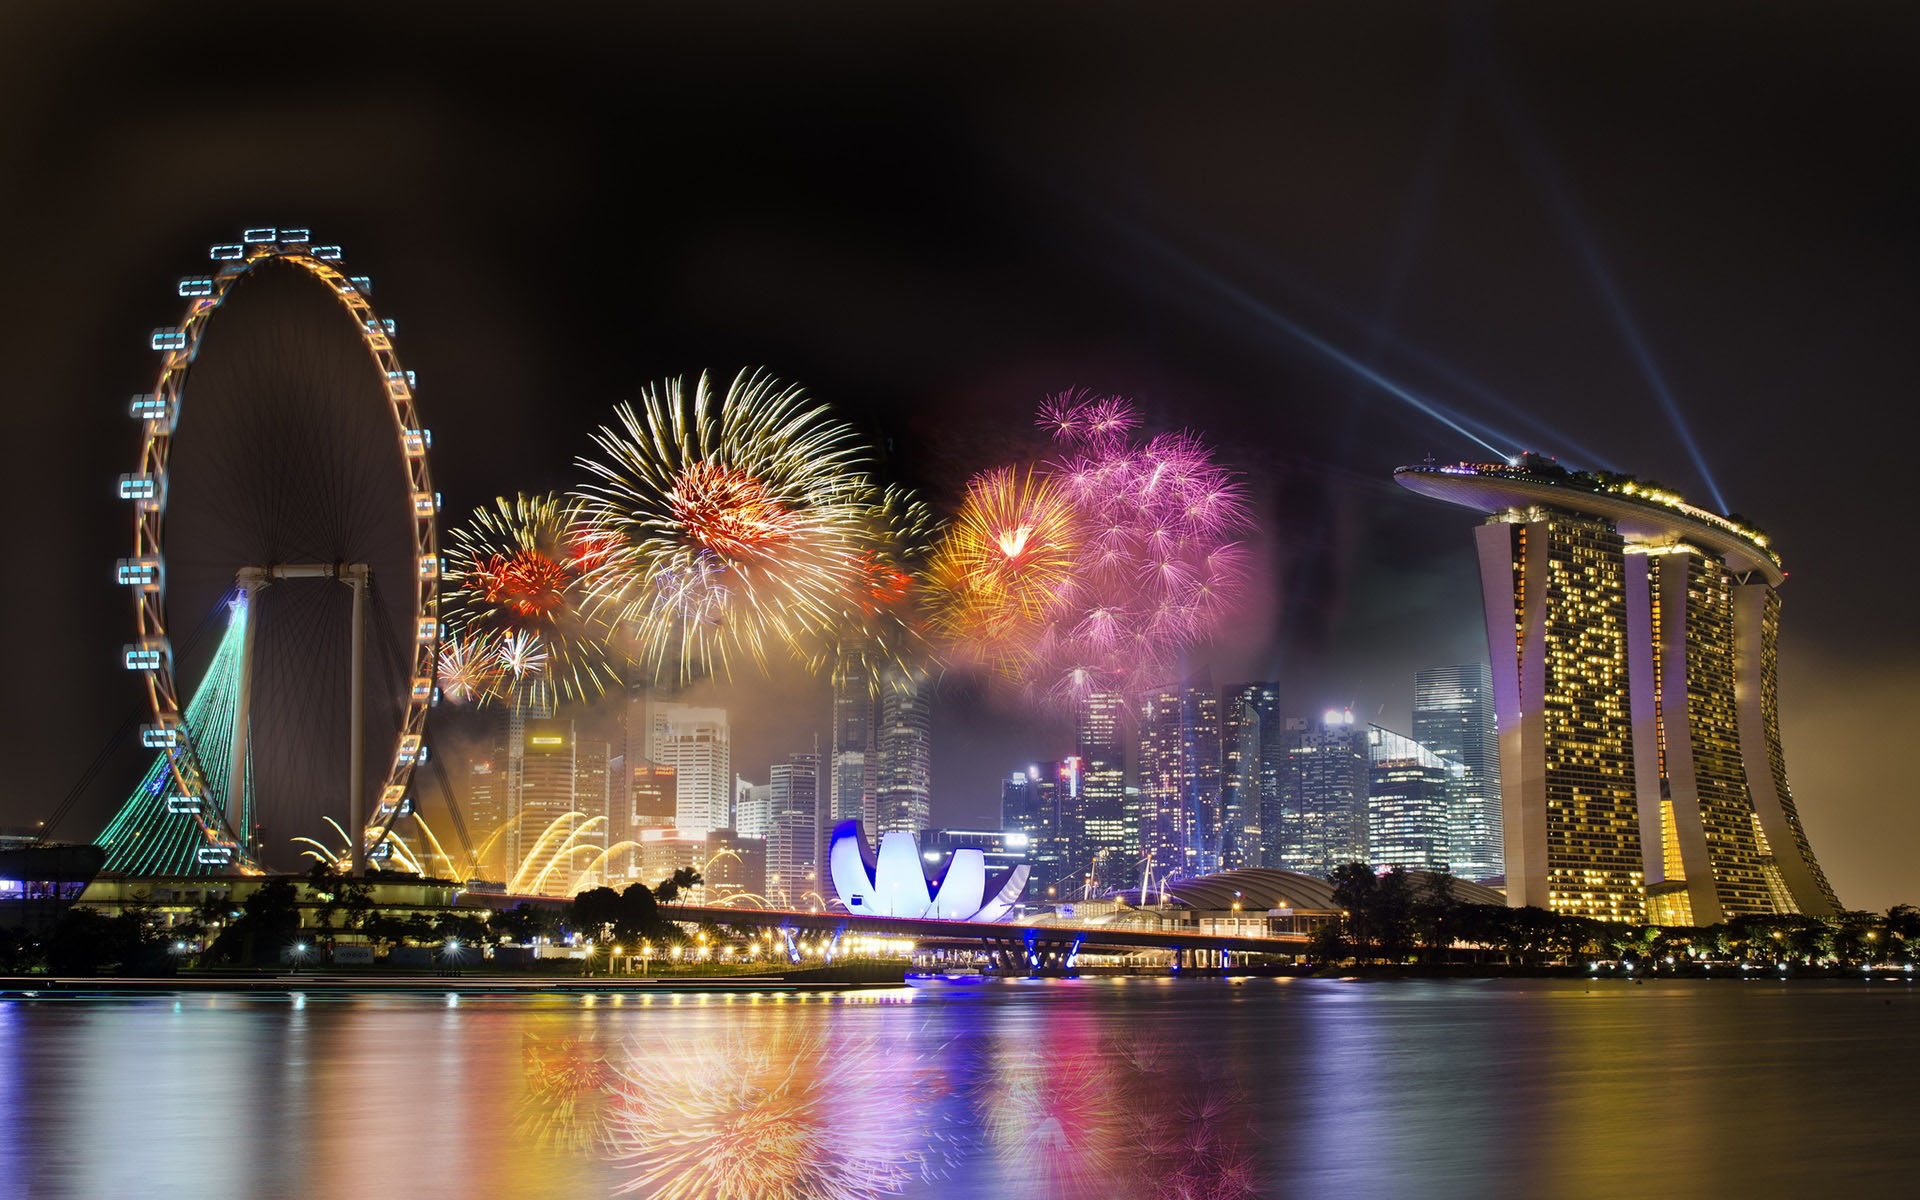 Fireworks wallpaper hd - High definition colorful wallpapers ...